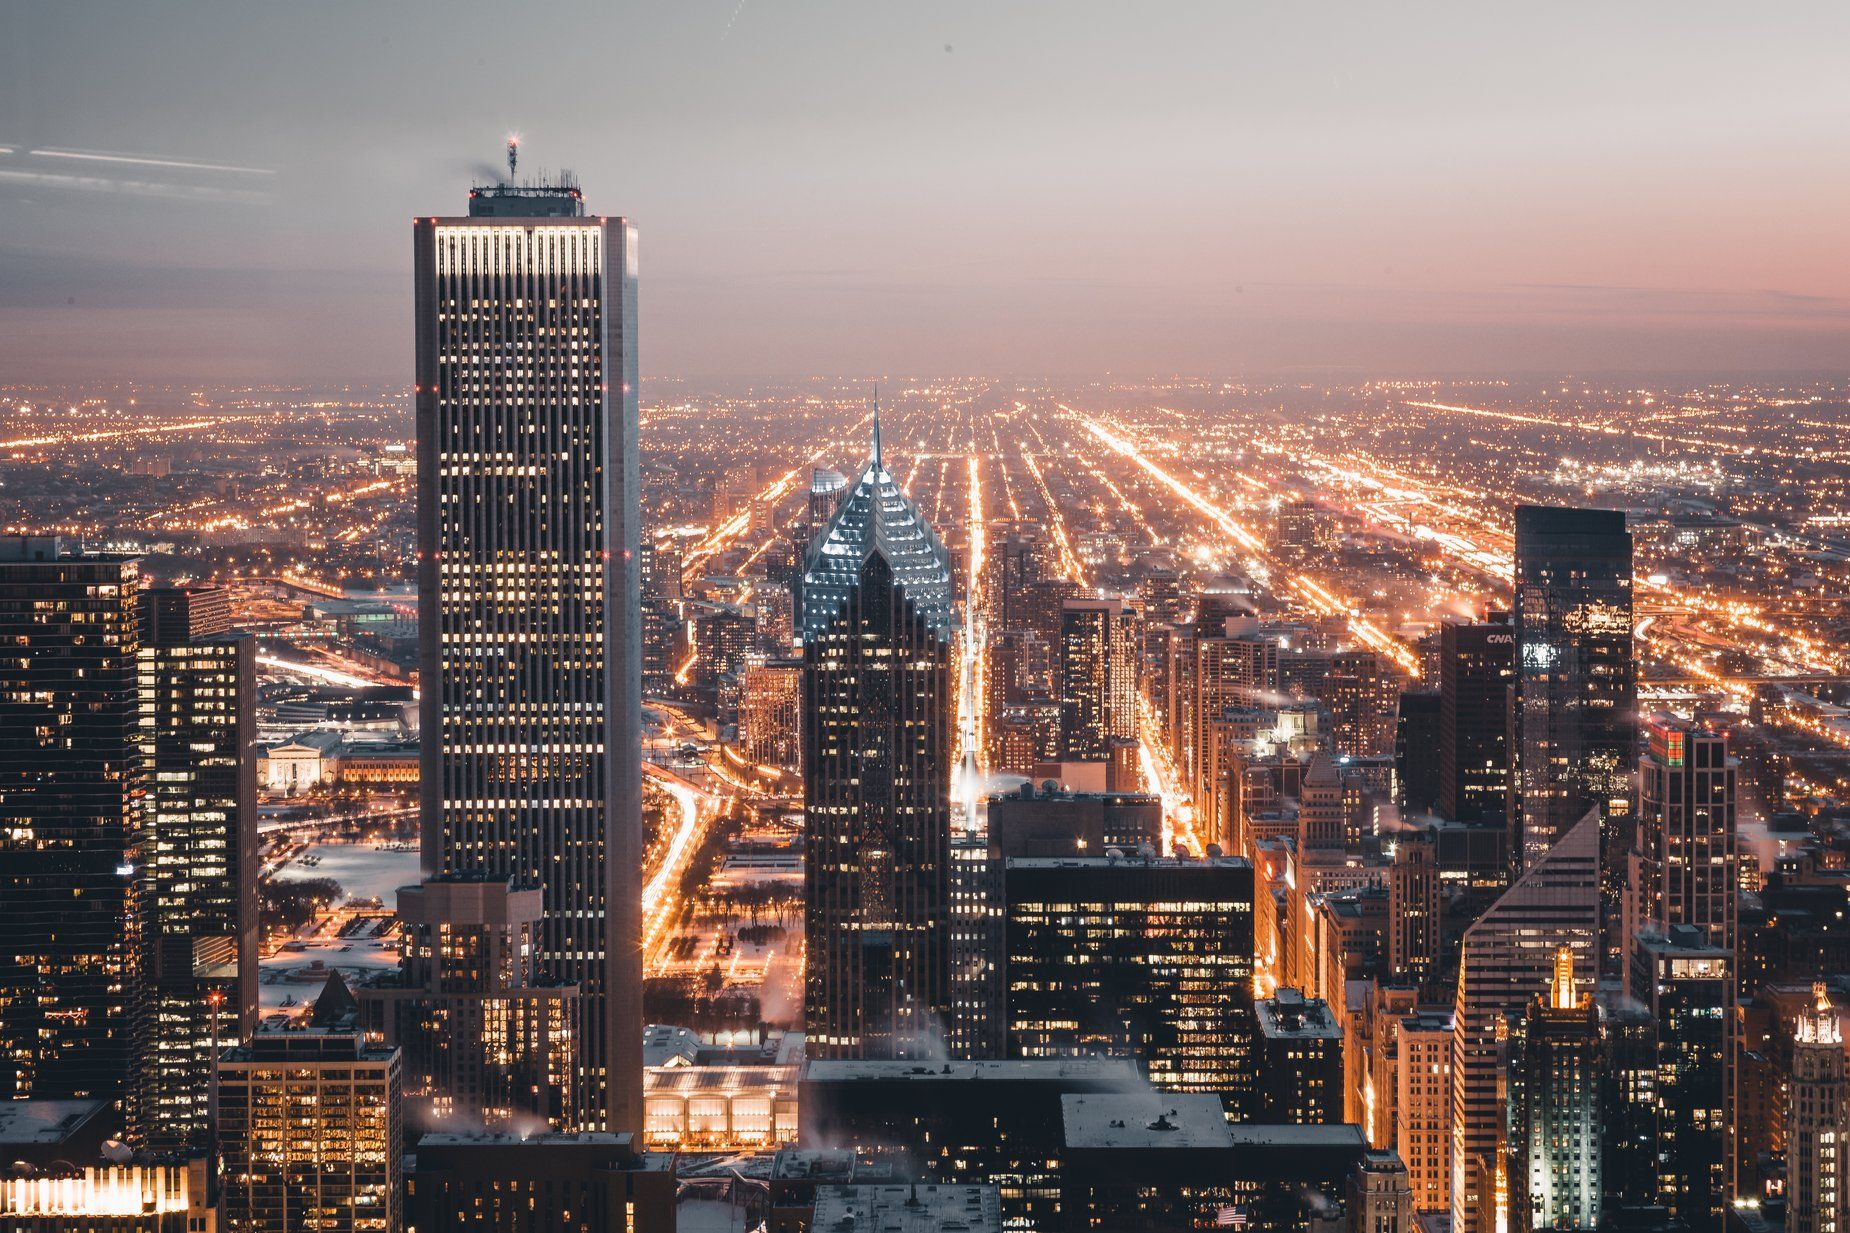 Image Of Chicago City Lights At Night This Free Stock Photo Is Also About City Busy View Urban Bright Skylin City Lights At Night Cityscape Chicago City